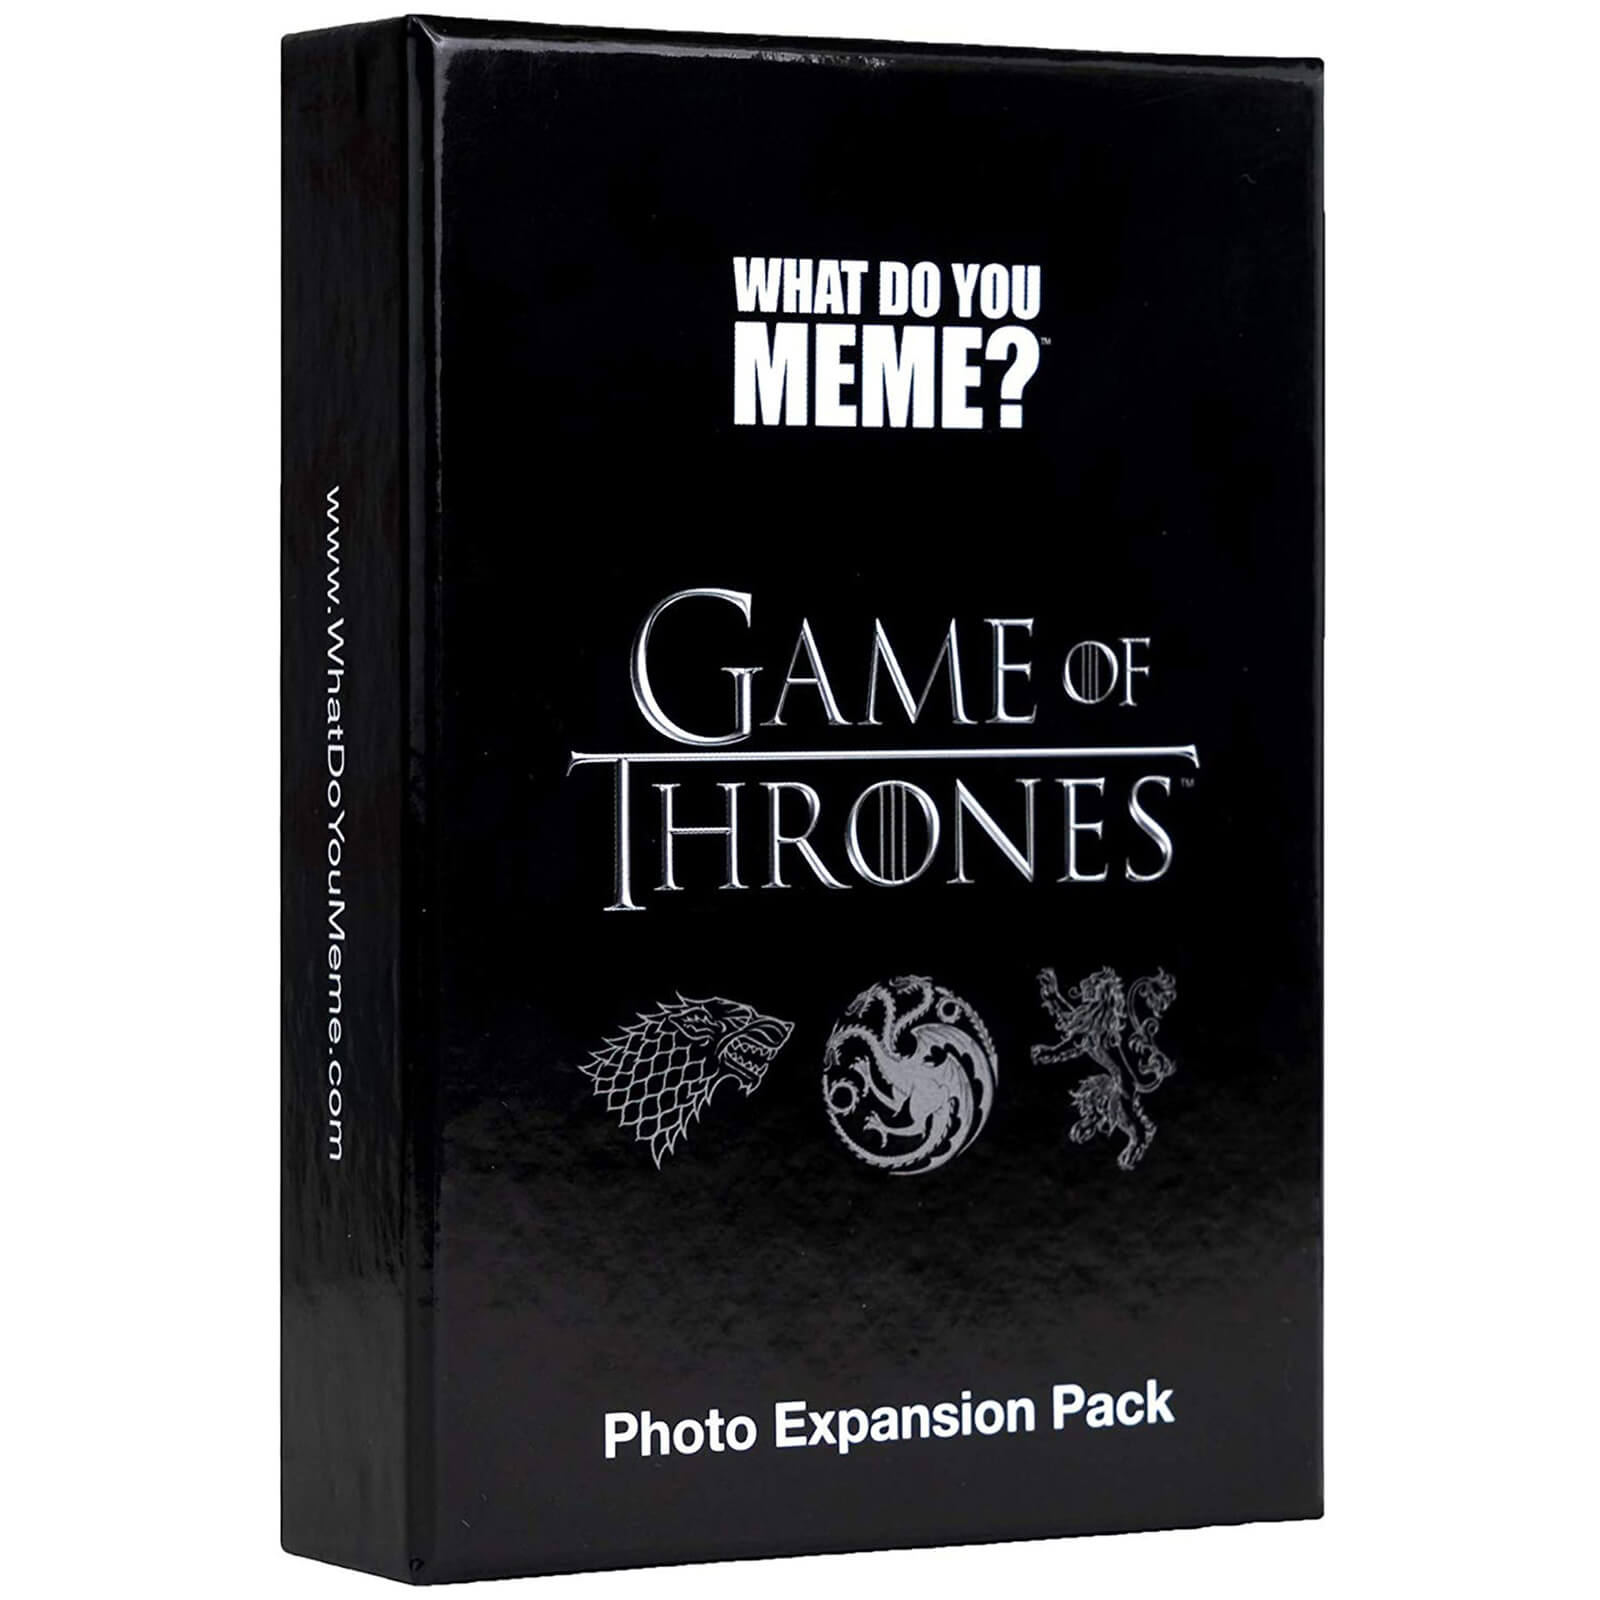 Image of What Do You Meme? Game of Thrones Photo Expansion Pack